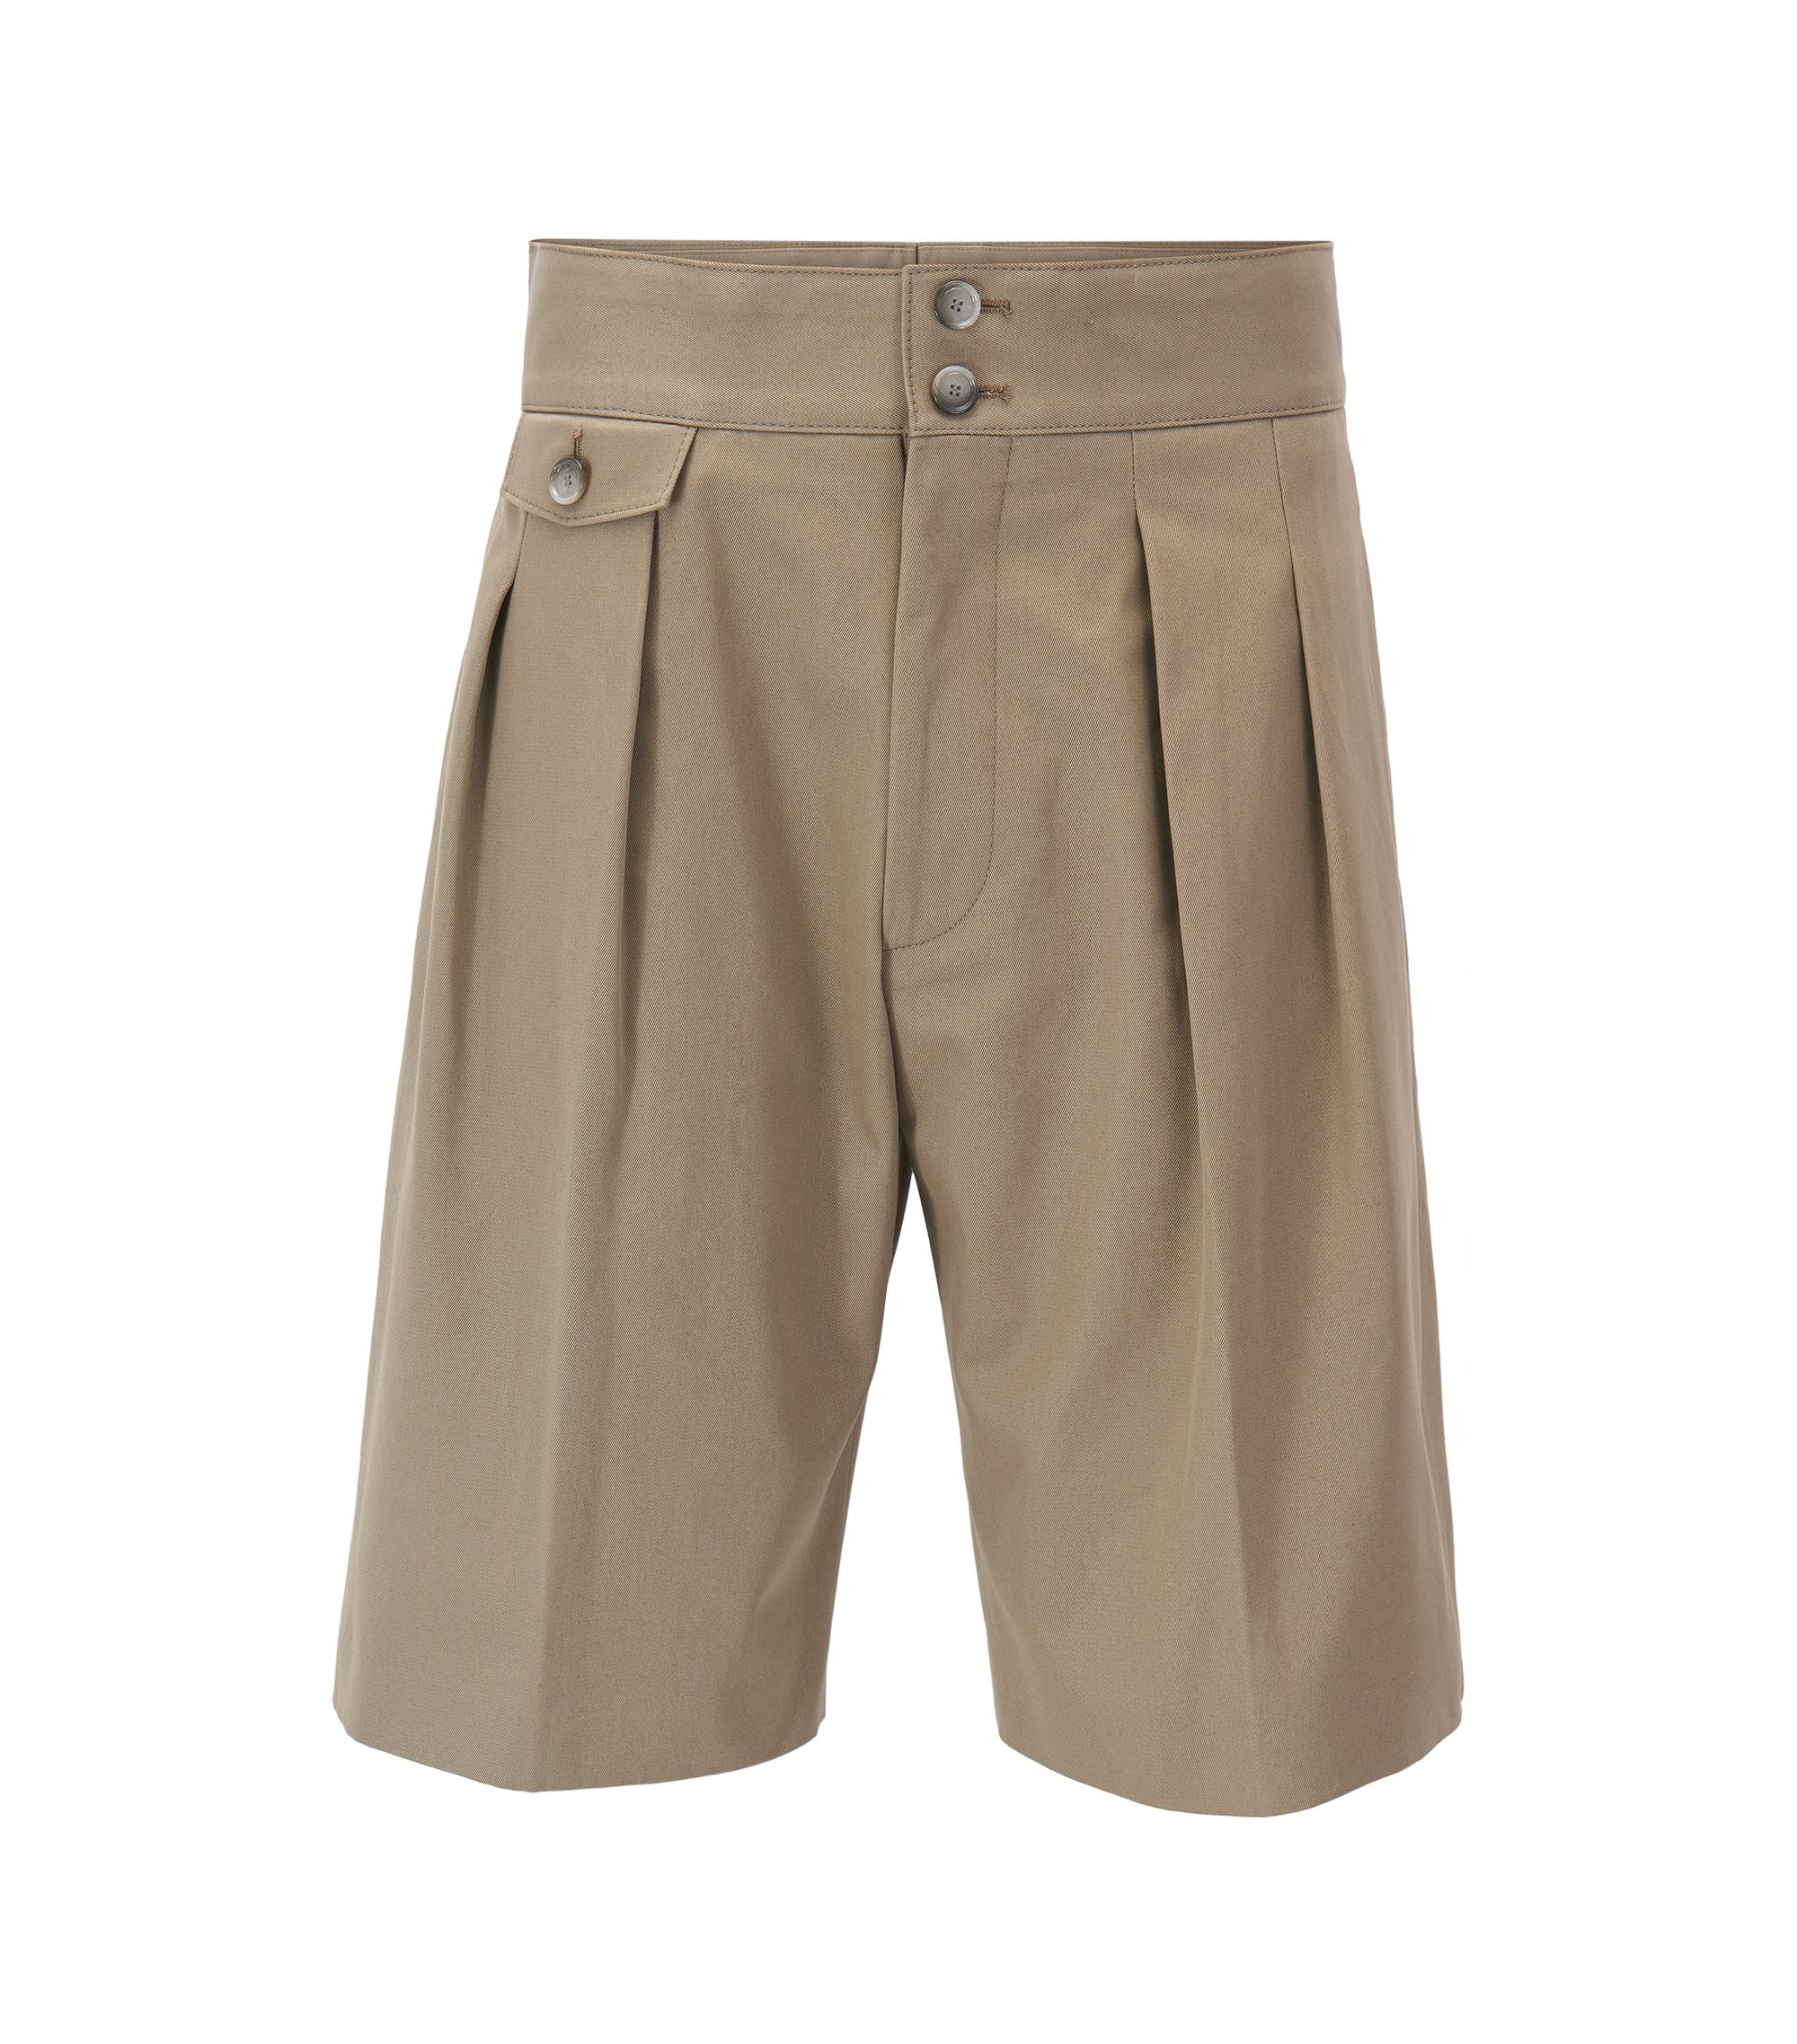 Runway Edition high-waisted pleated shorts in pure cotton, Beige